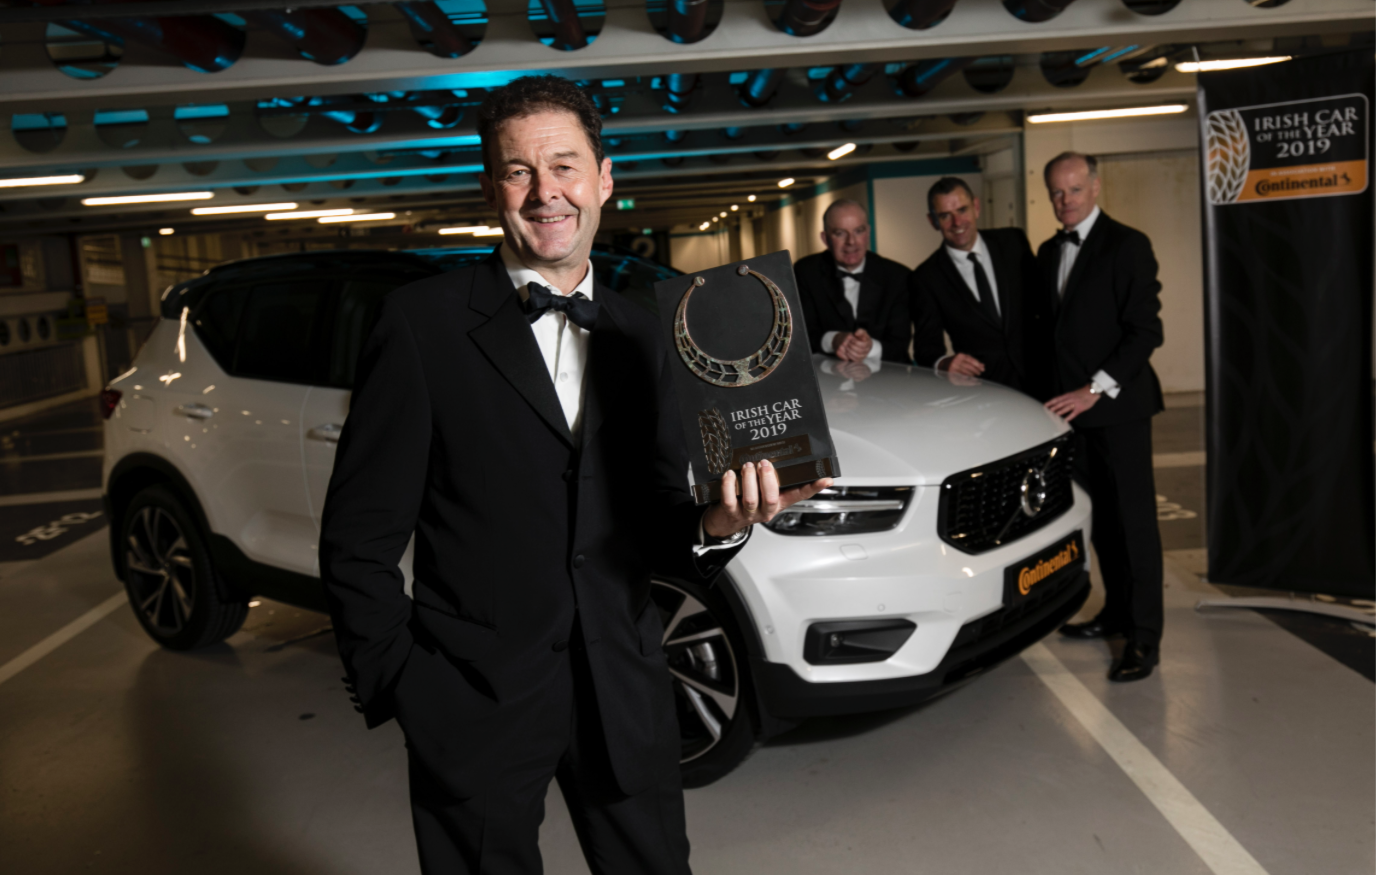 irish car of the year website news | rev.ie